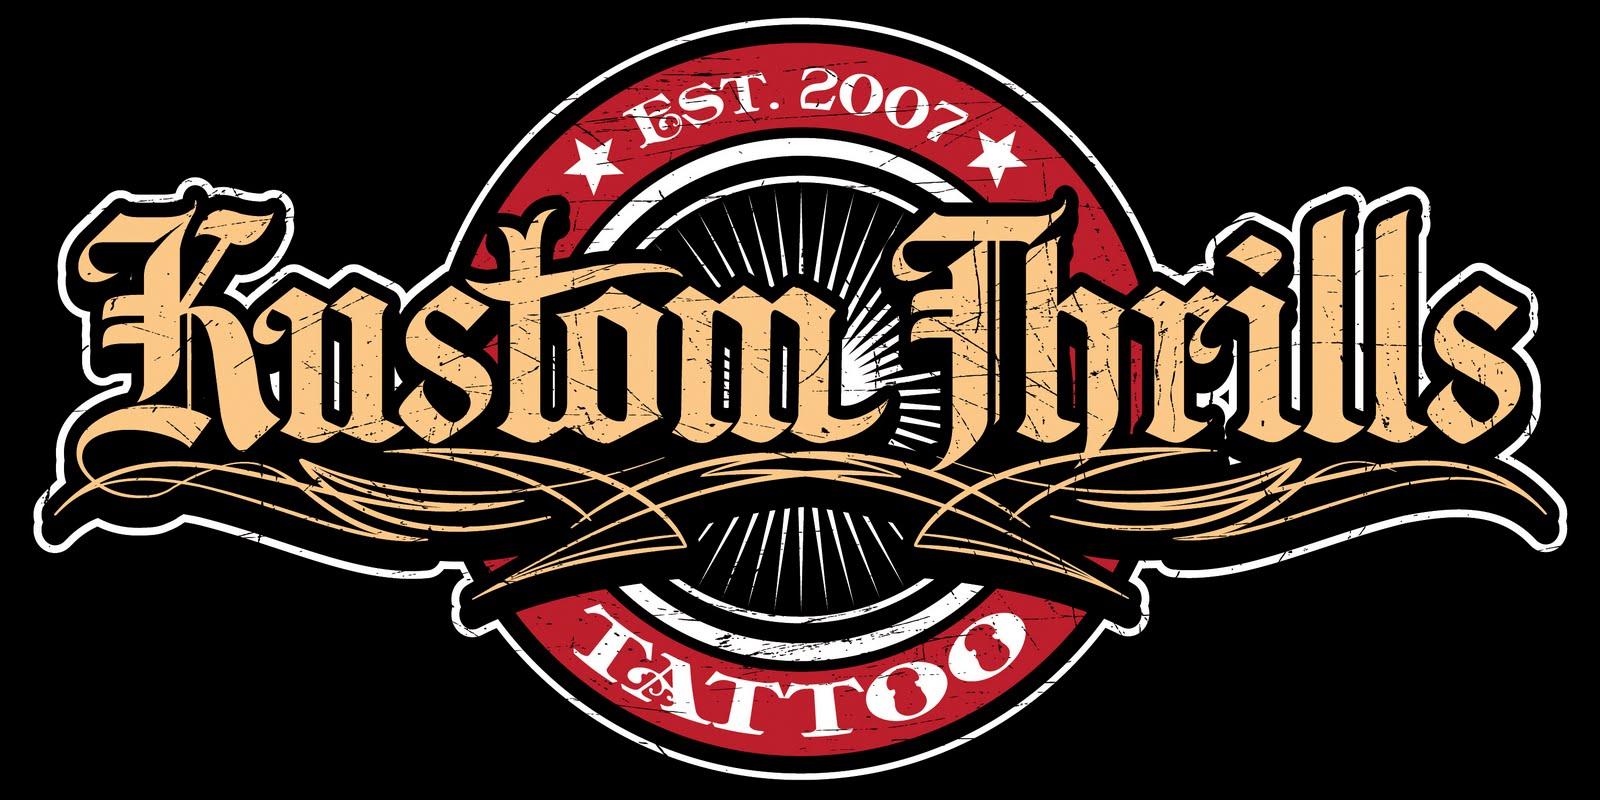 kustom thrills tattoo shop logo